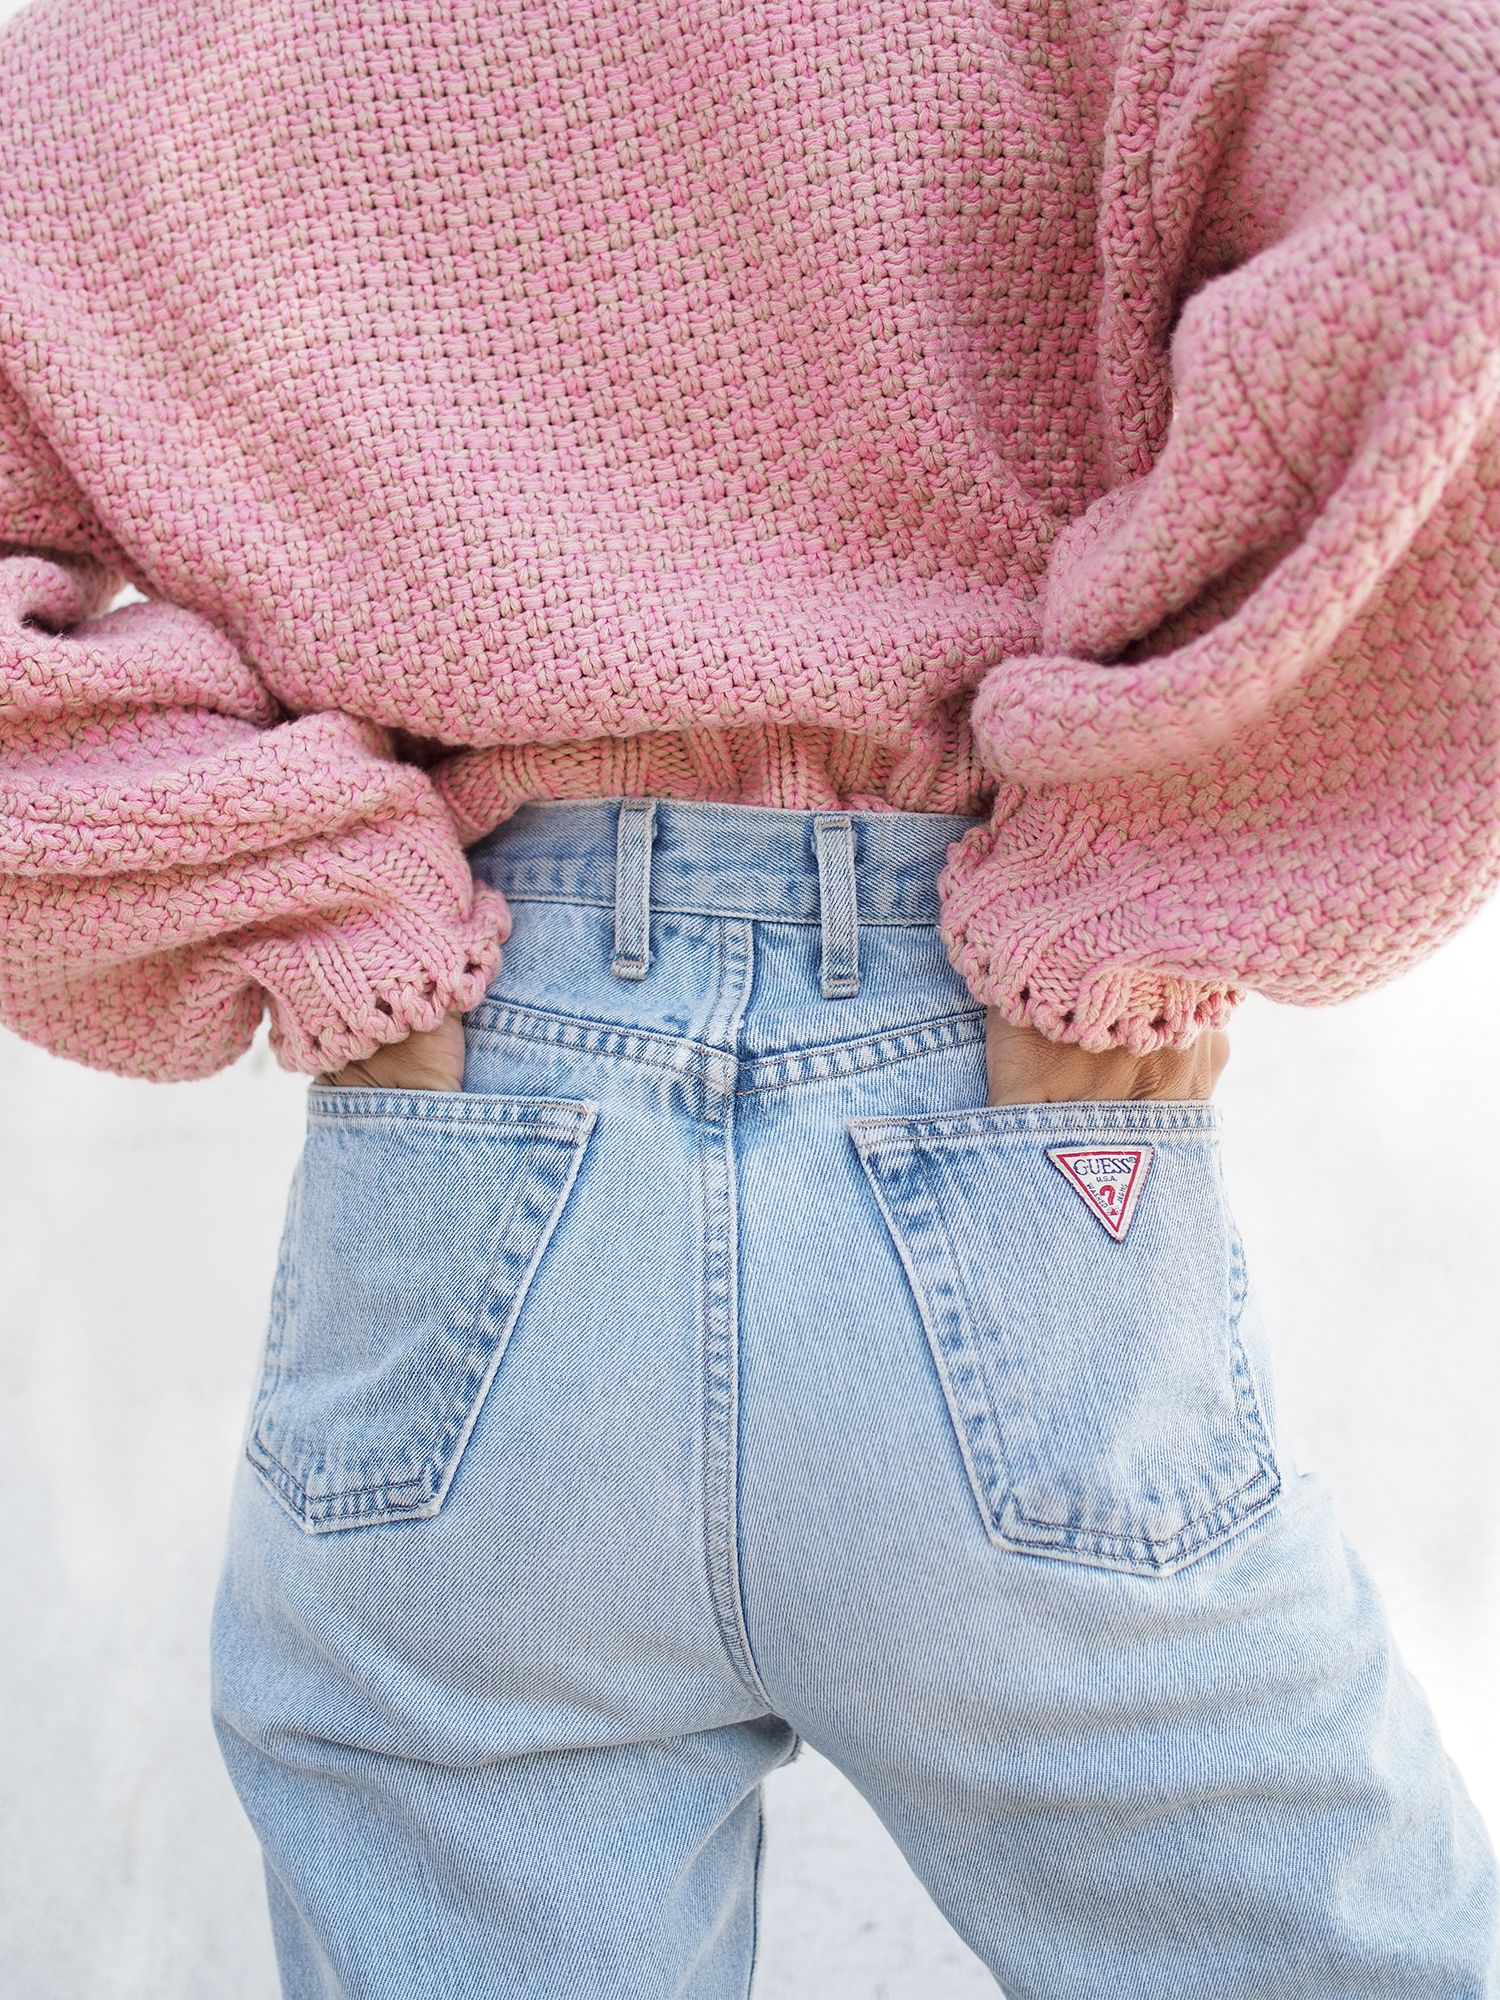 d54266dc27e CHUNKY PINK KNIT - Unconscious Style  shhtephs Chunky Pink Knit Sweater –  H M